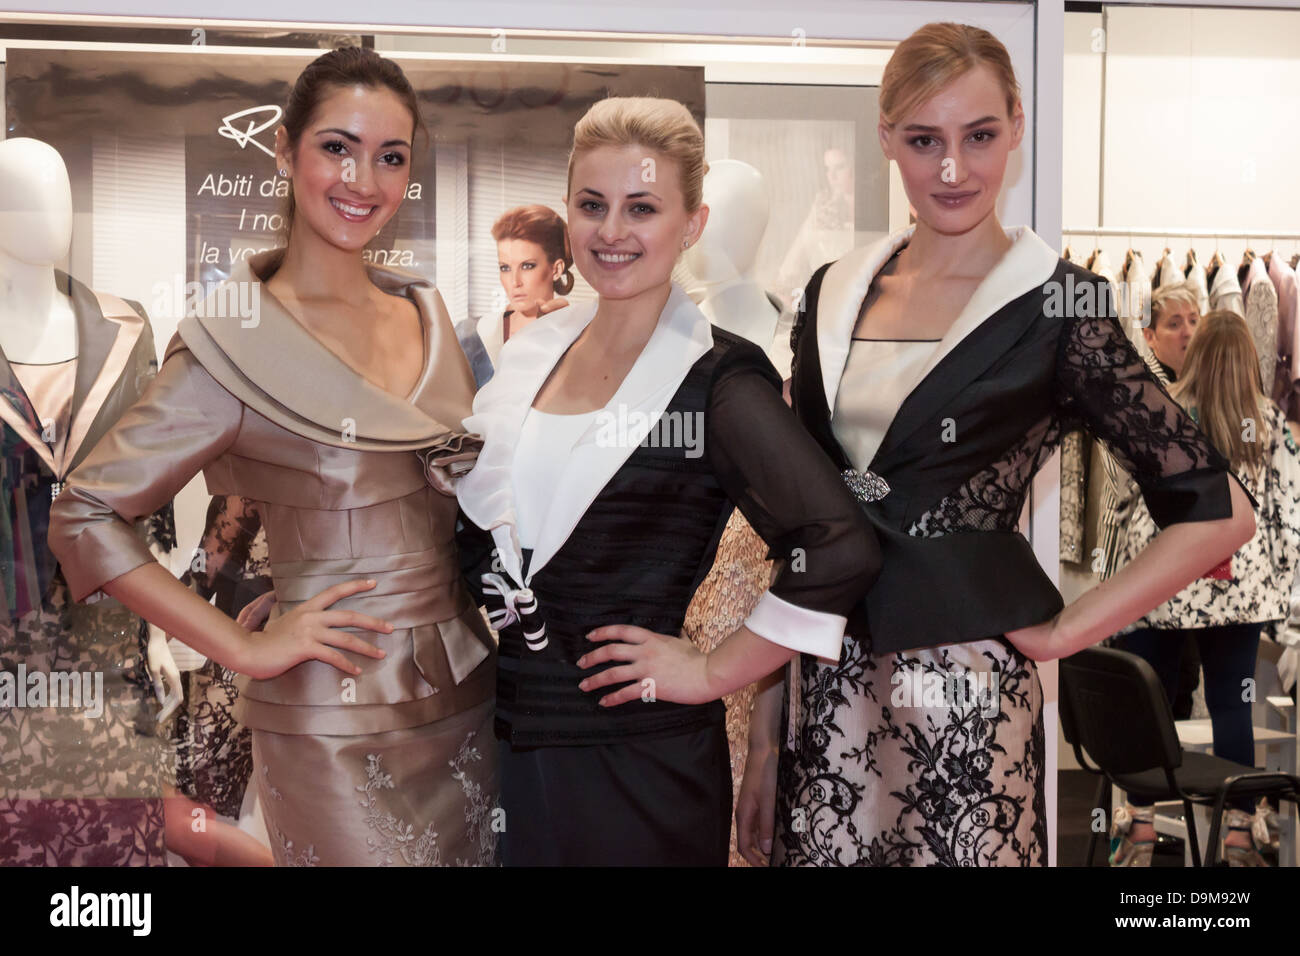 Milan, Italy - June 21, 2013: People visit SposaItalia, international exhibition of bridal and formal wear in Milan. - Stock Image